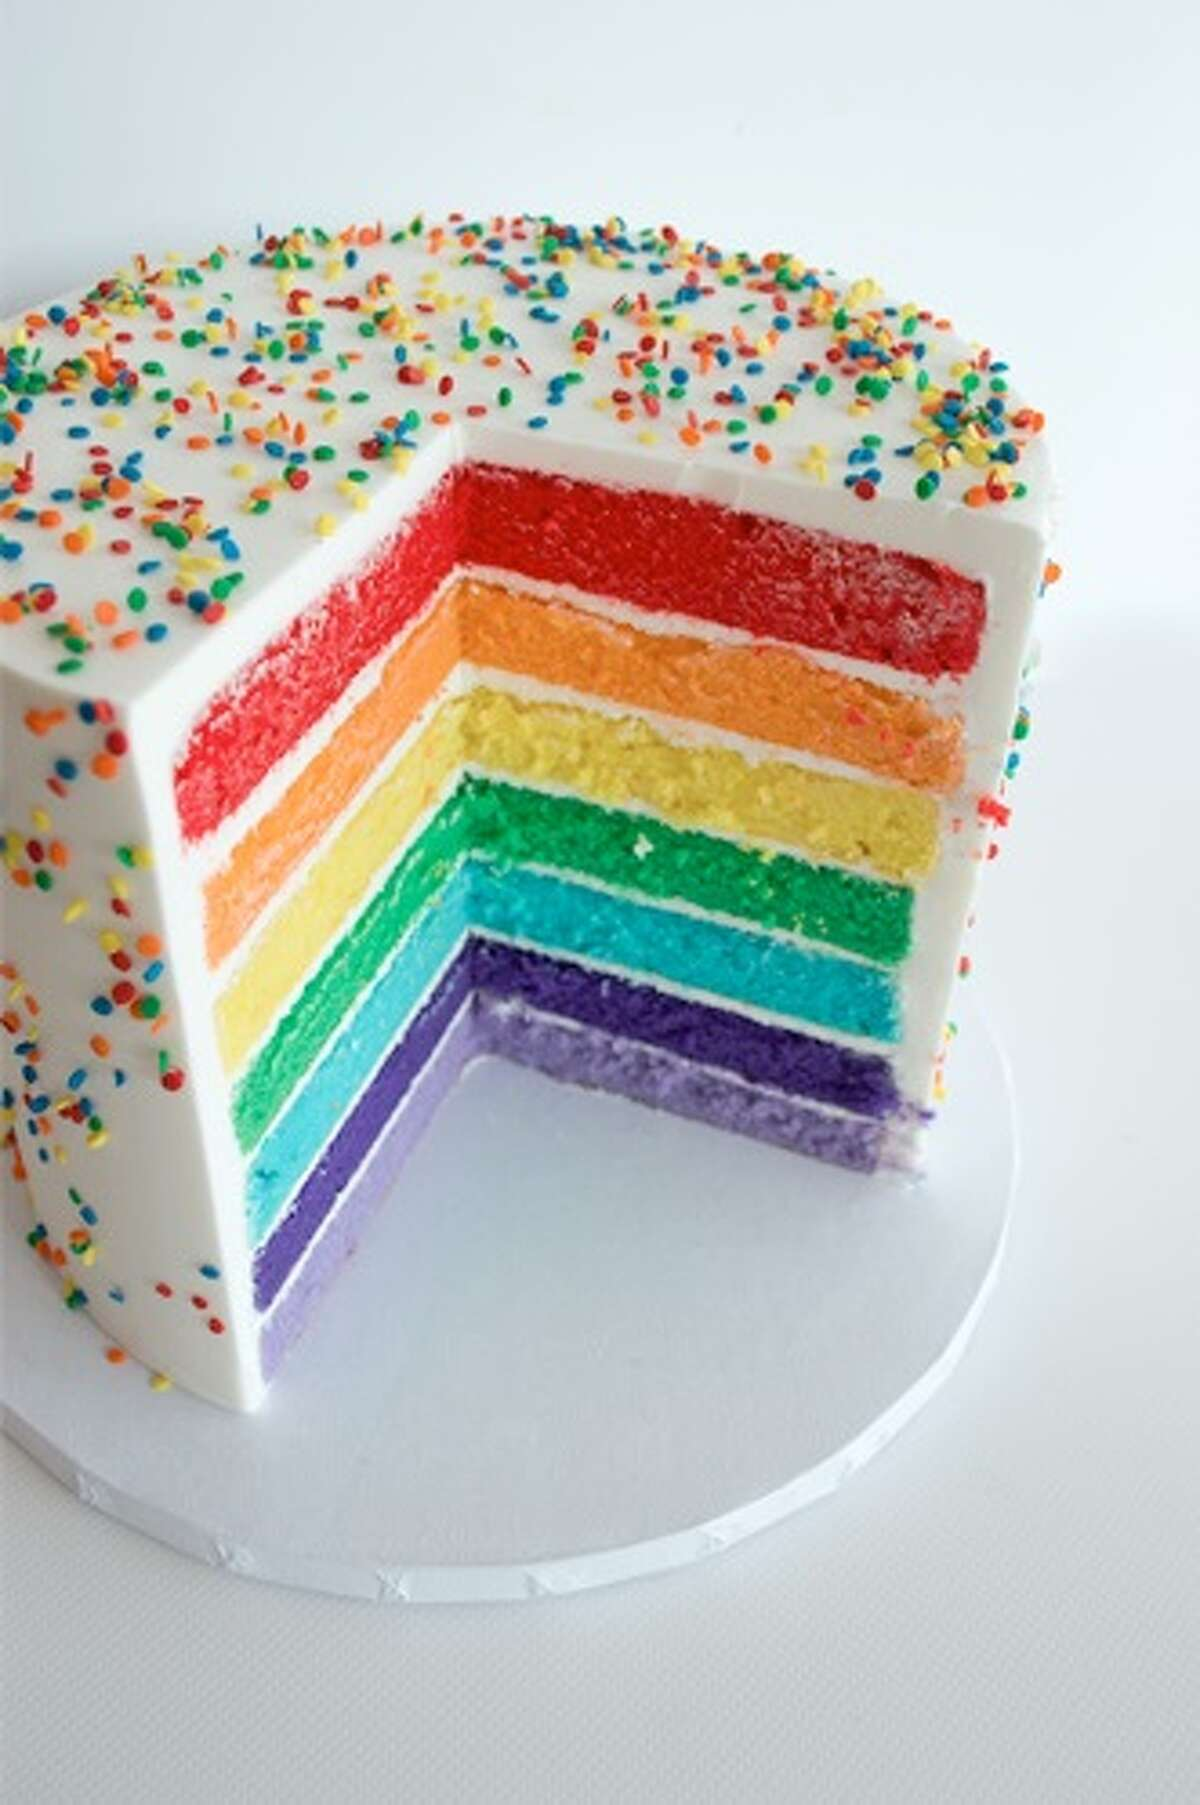 Three Brothers Bakery is offering a seven-layer cake in the colors of the Pride flag for Gay Pride Month, June 2018. Check out more photos of pride-themed desserts and how Houston has celebrated gay pride through the years.